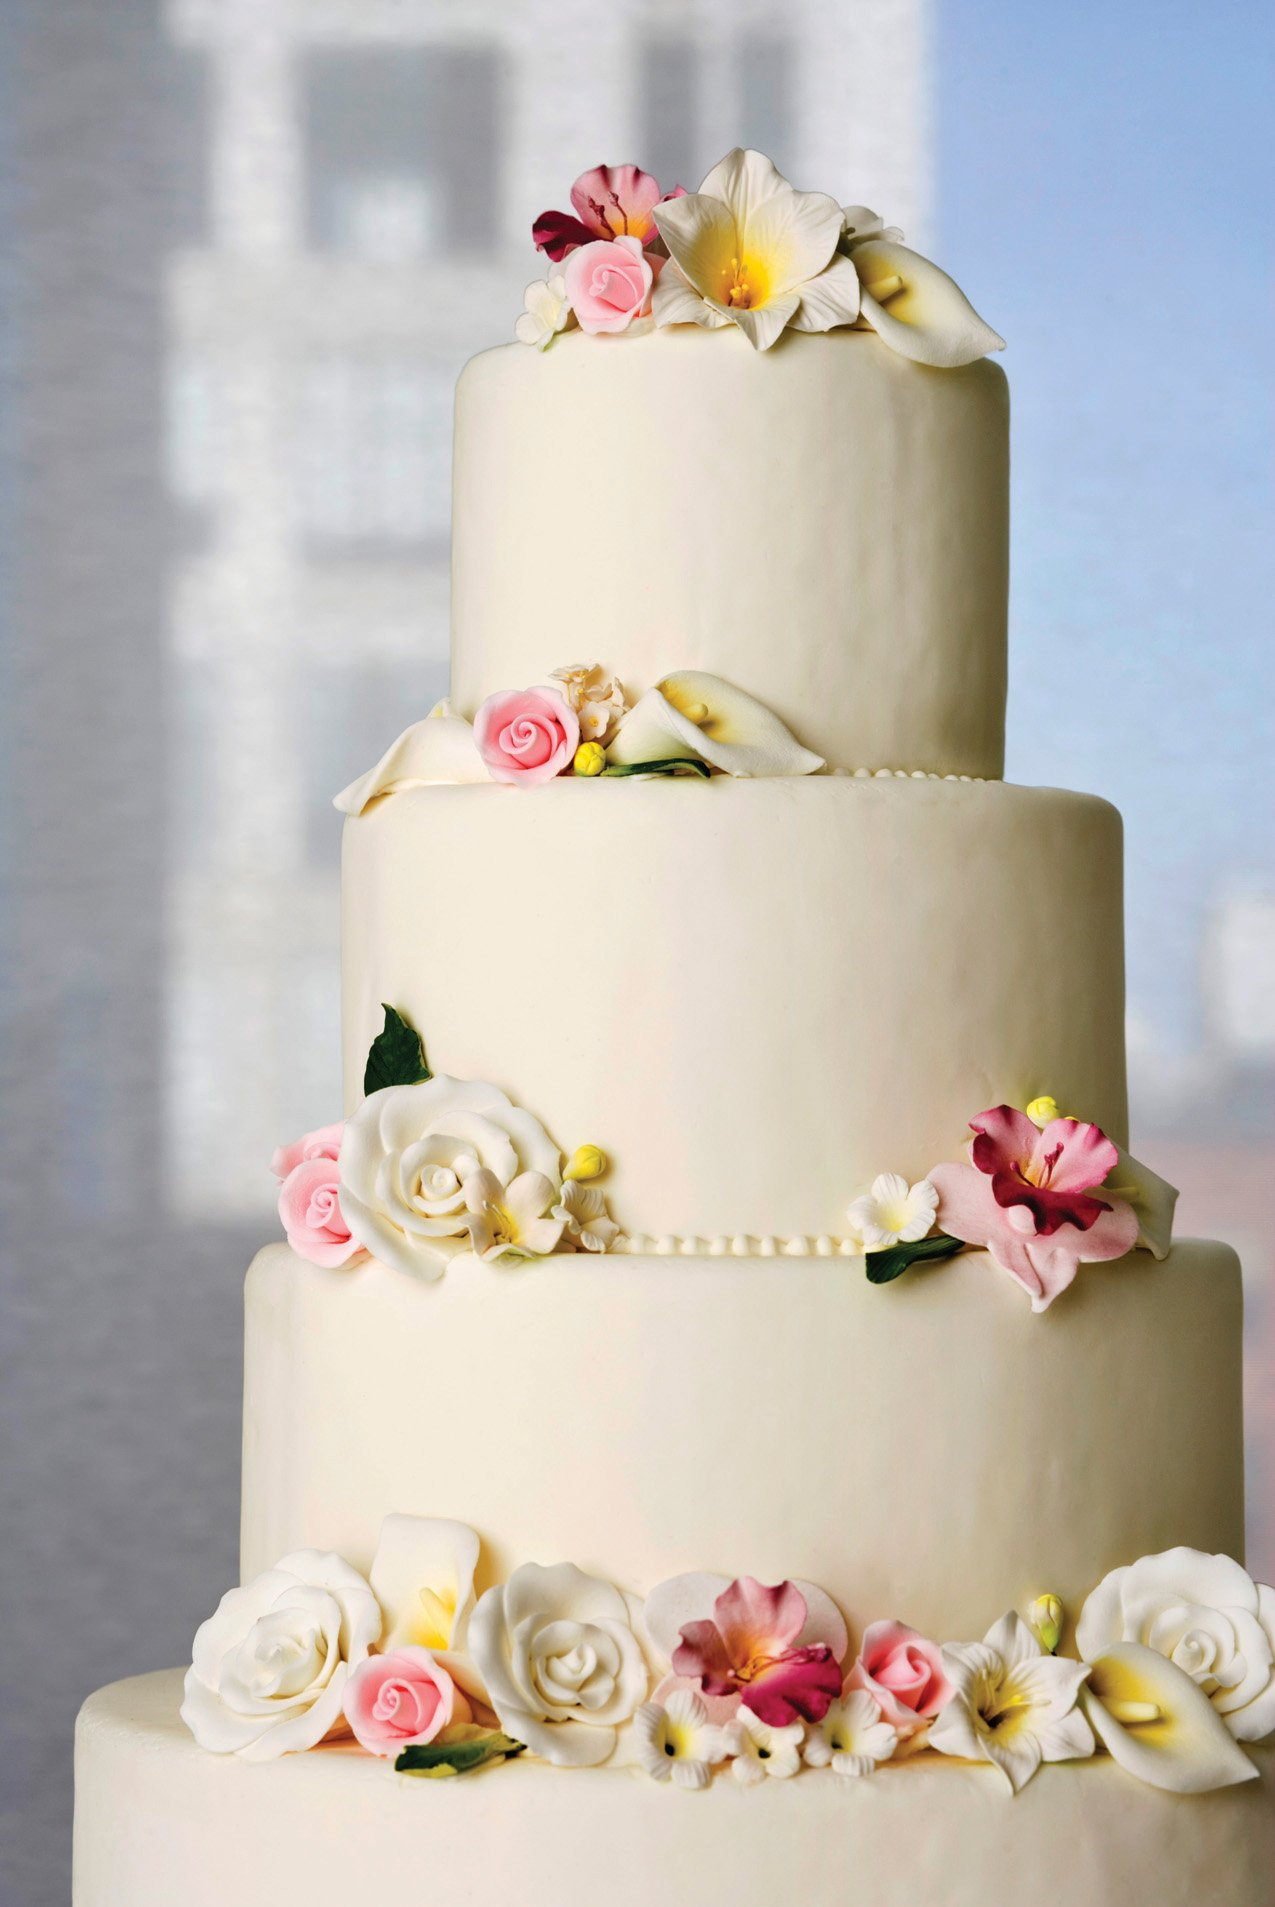 Cake-cutting etiquette and guidelines